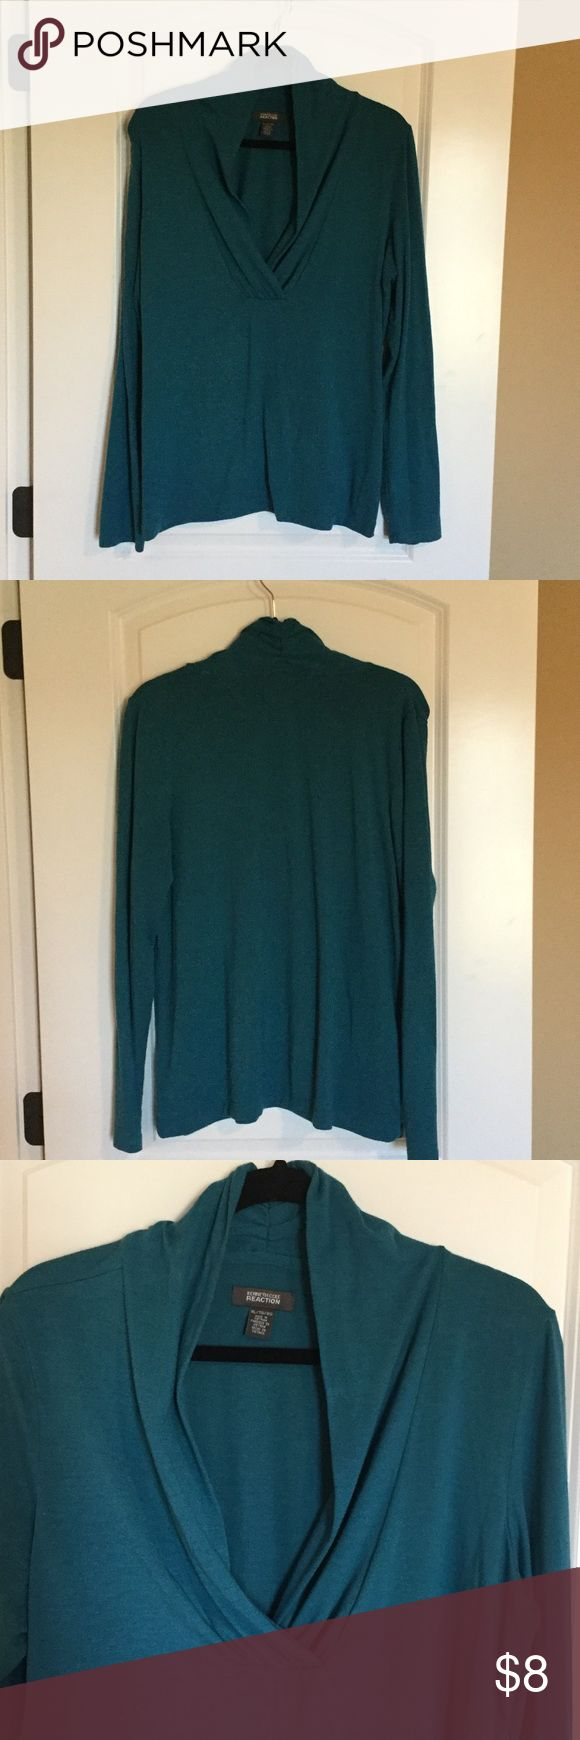 Kenneth Cole reaction knit top long sleeve Pretty dark green long sleeve top features a lovely crossover neck line. Kenneth Cole reaction. Kenneth Cole Reaction Tops Tees - Long Sleeve